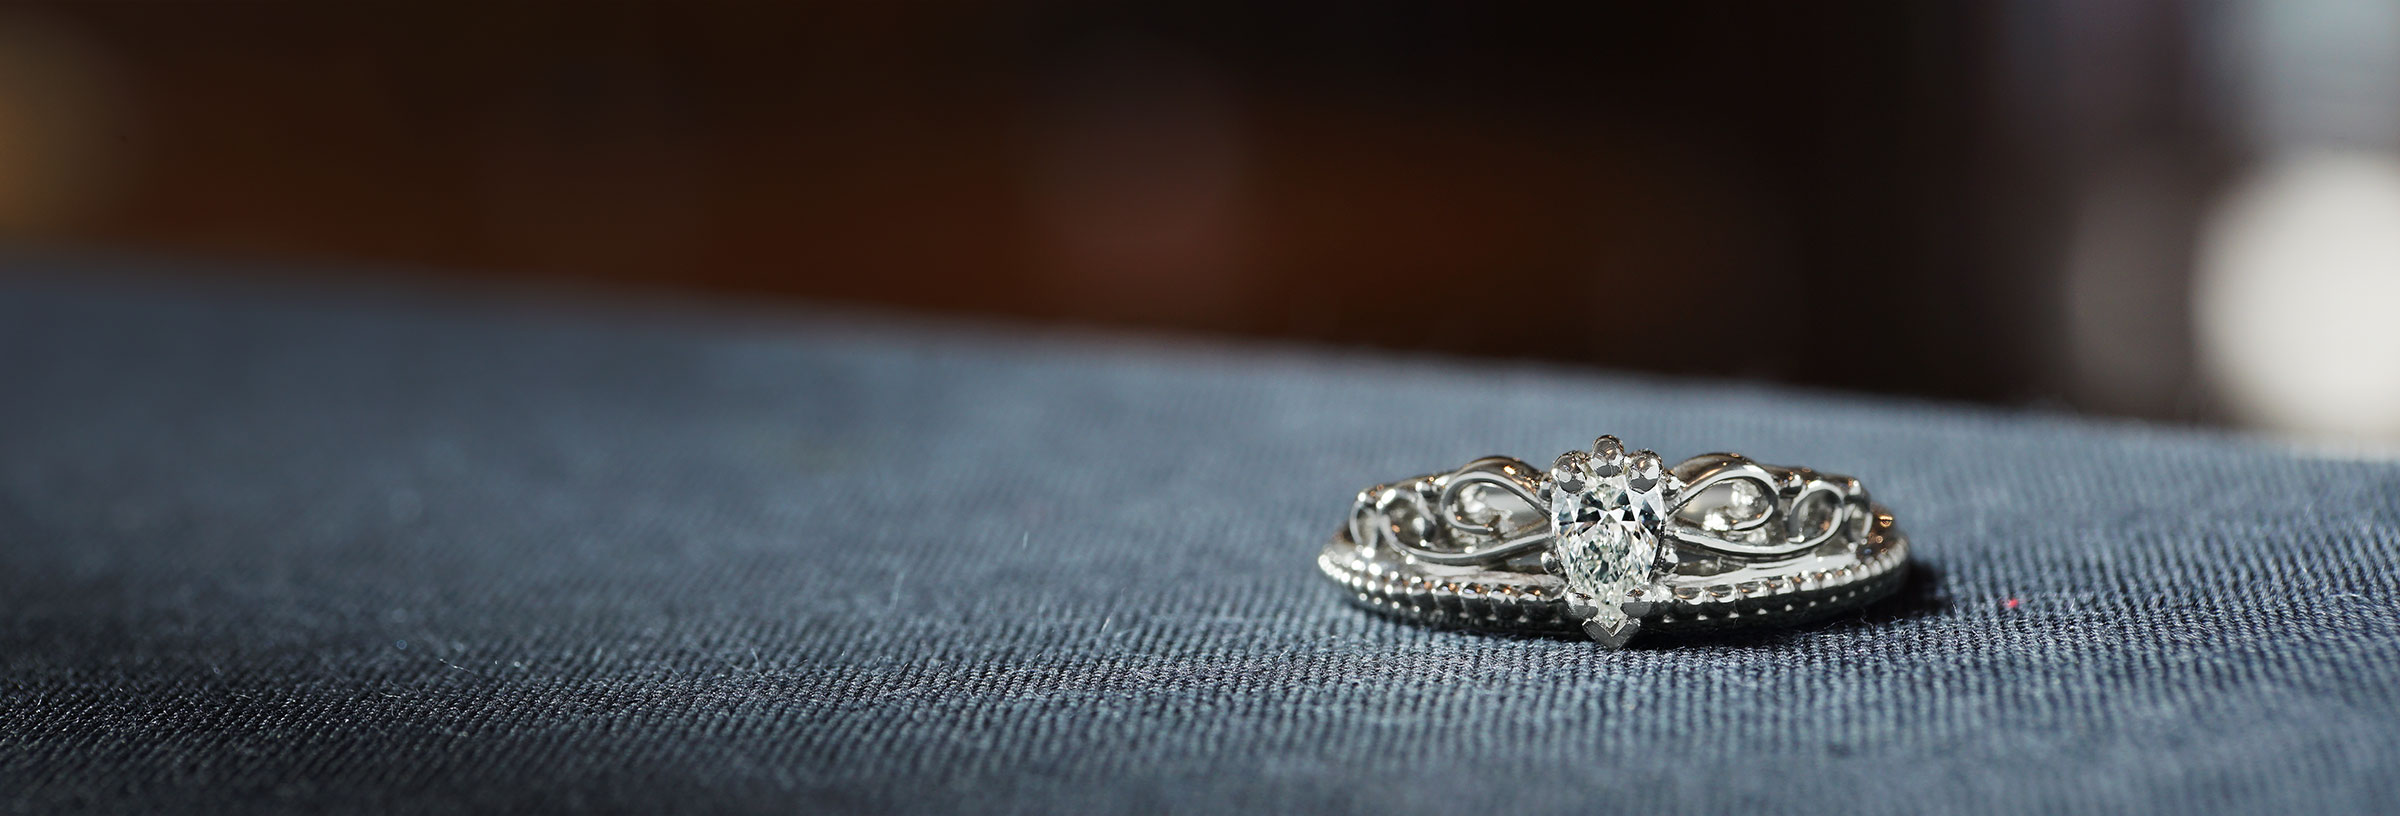 palladium-tiara-inspired-engagement-ring-with-pear-cut-diamond